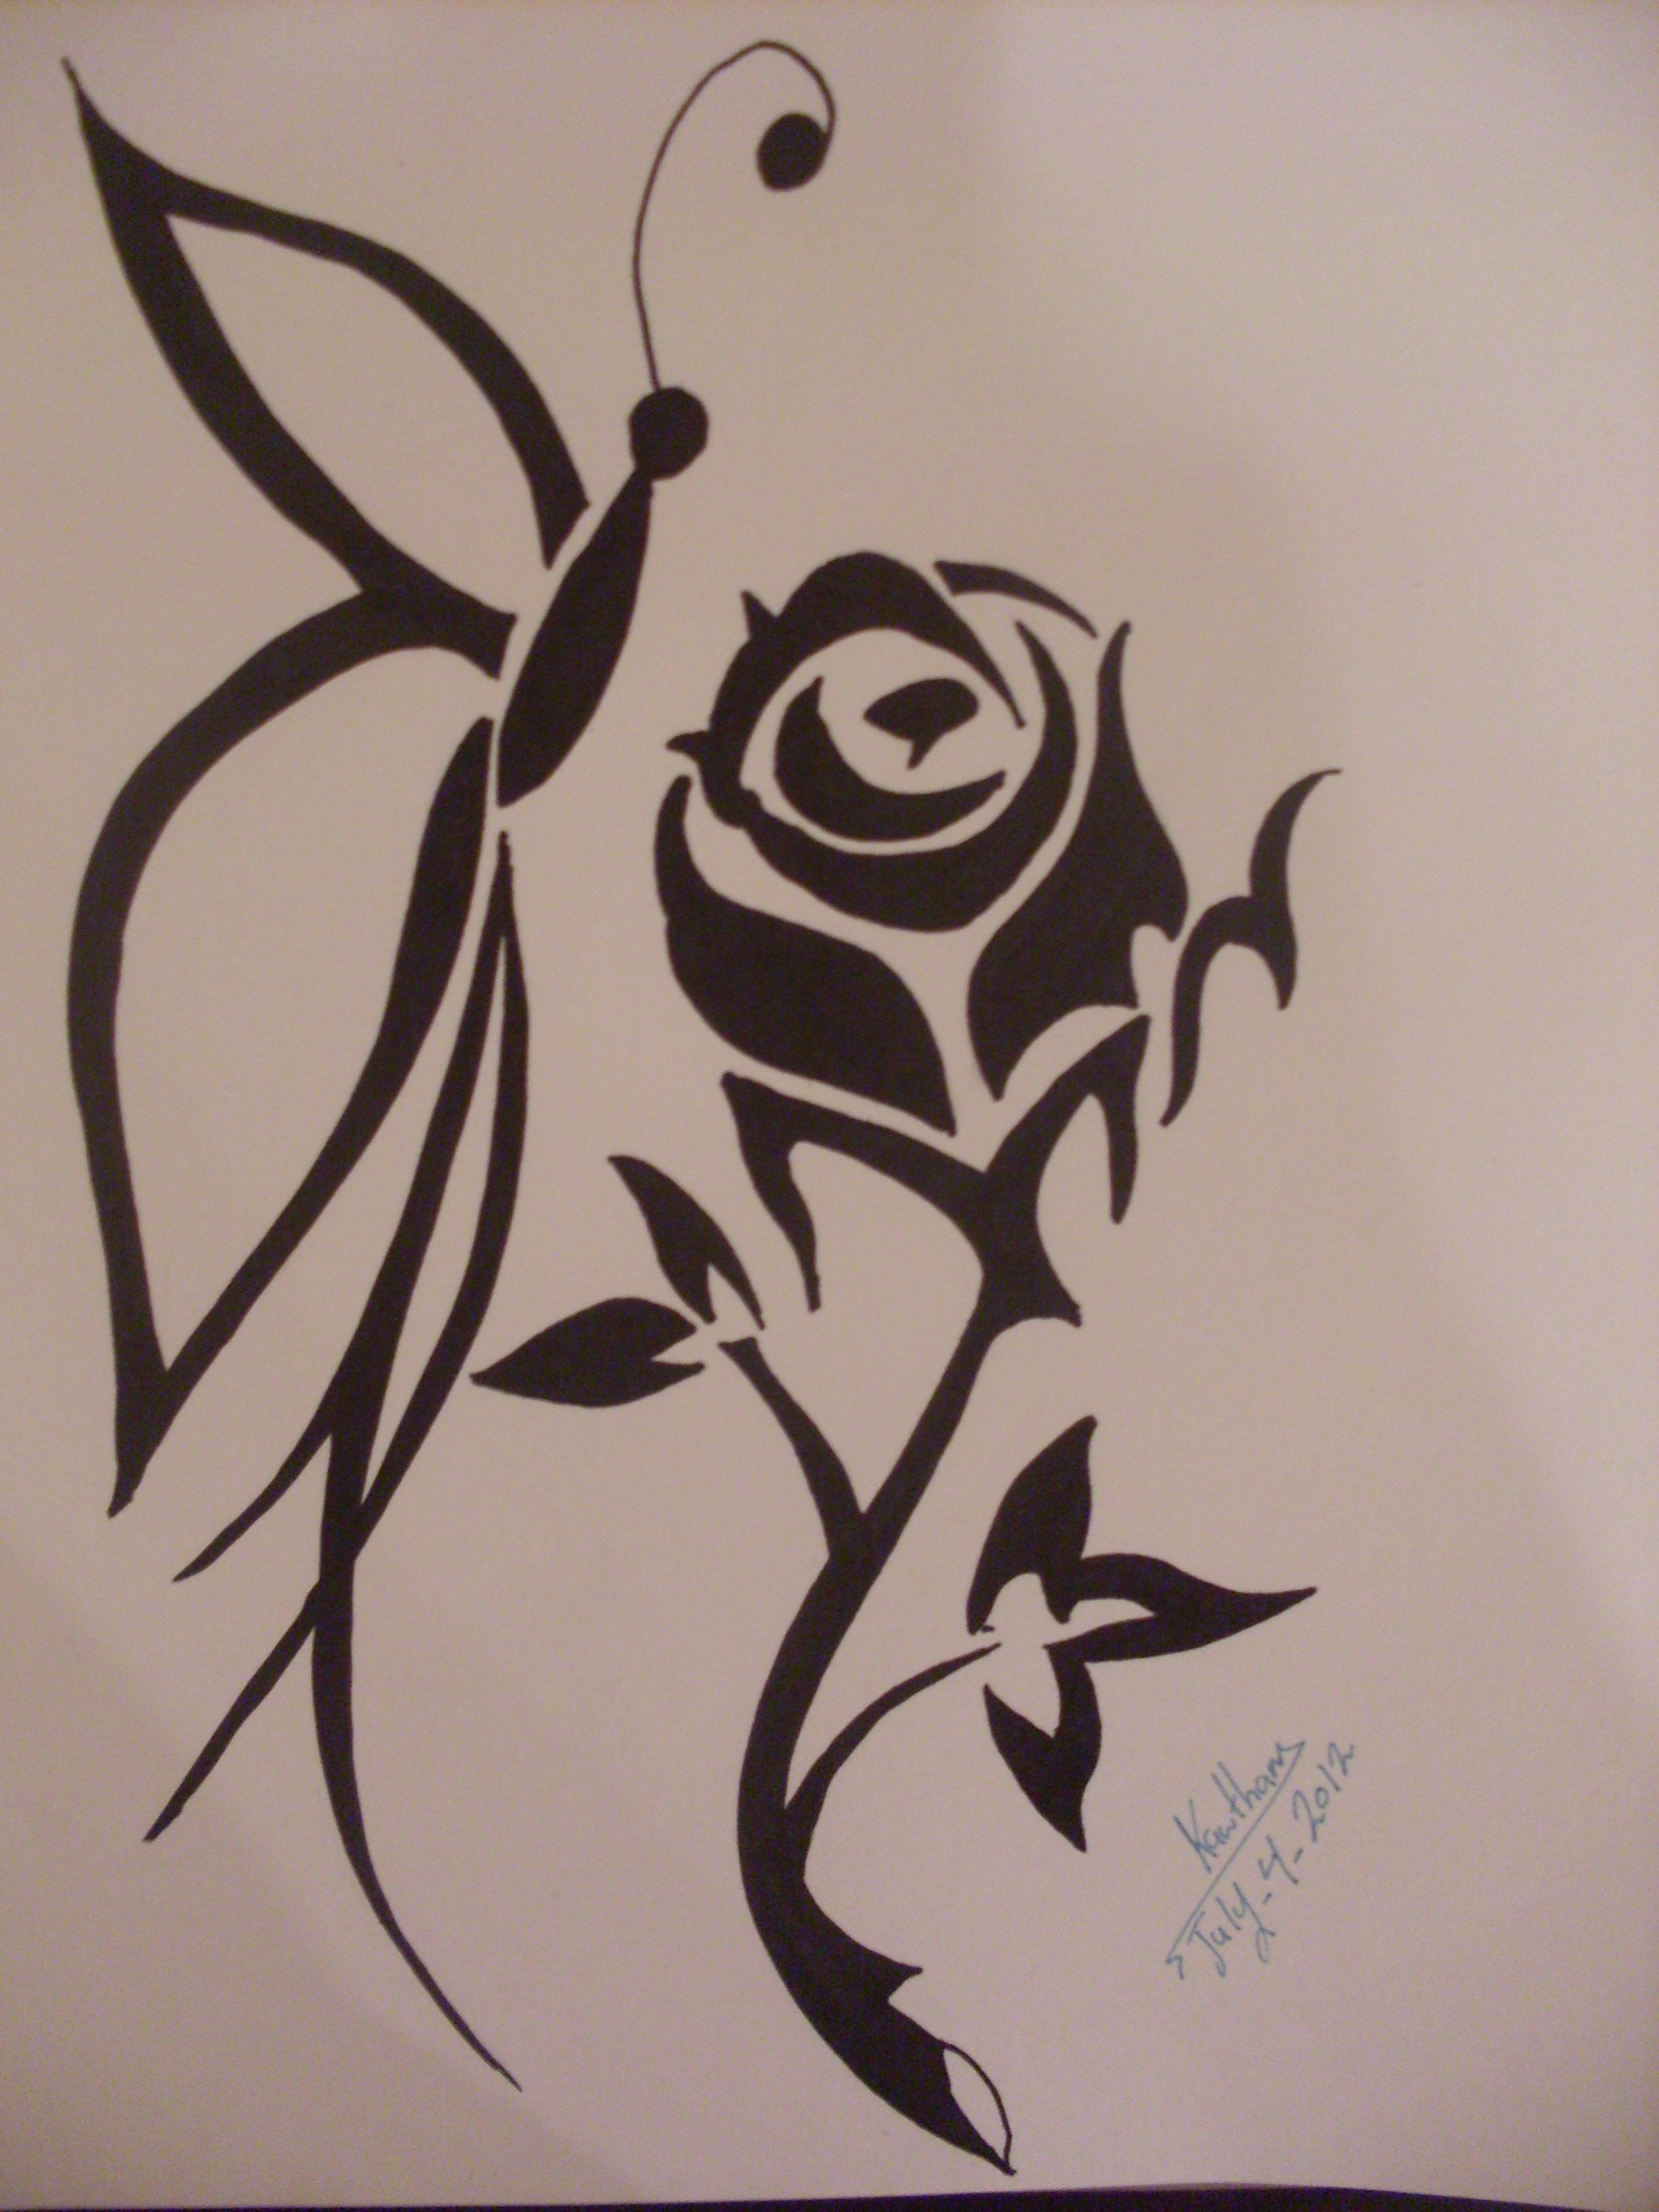 2304x3072 Graffiti Flower Drawings Attempt Of Rose Heart Drawing